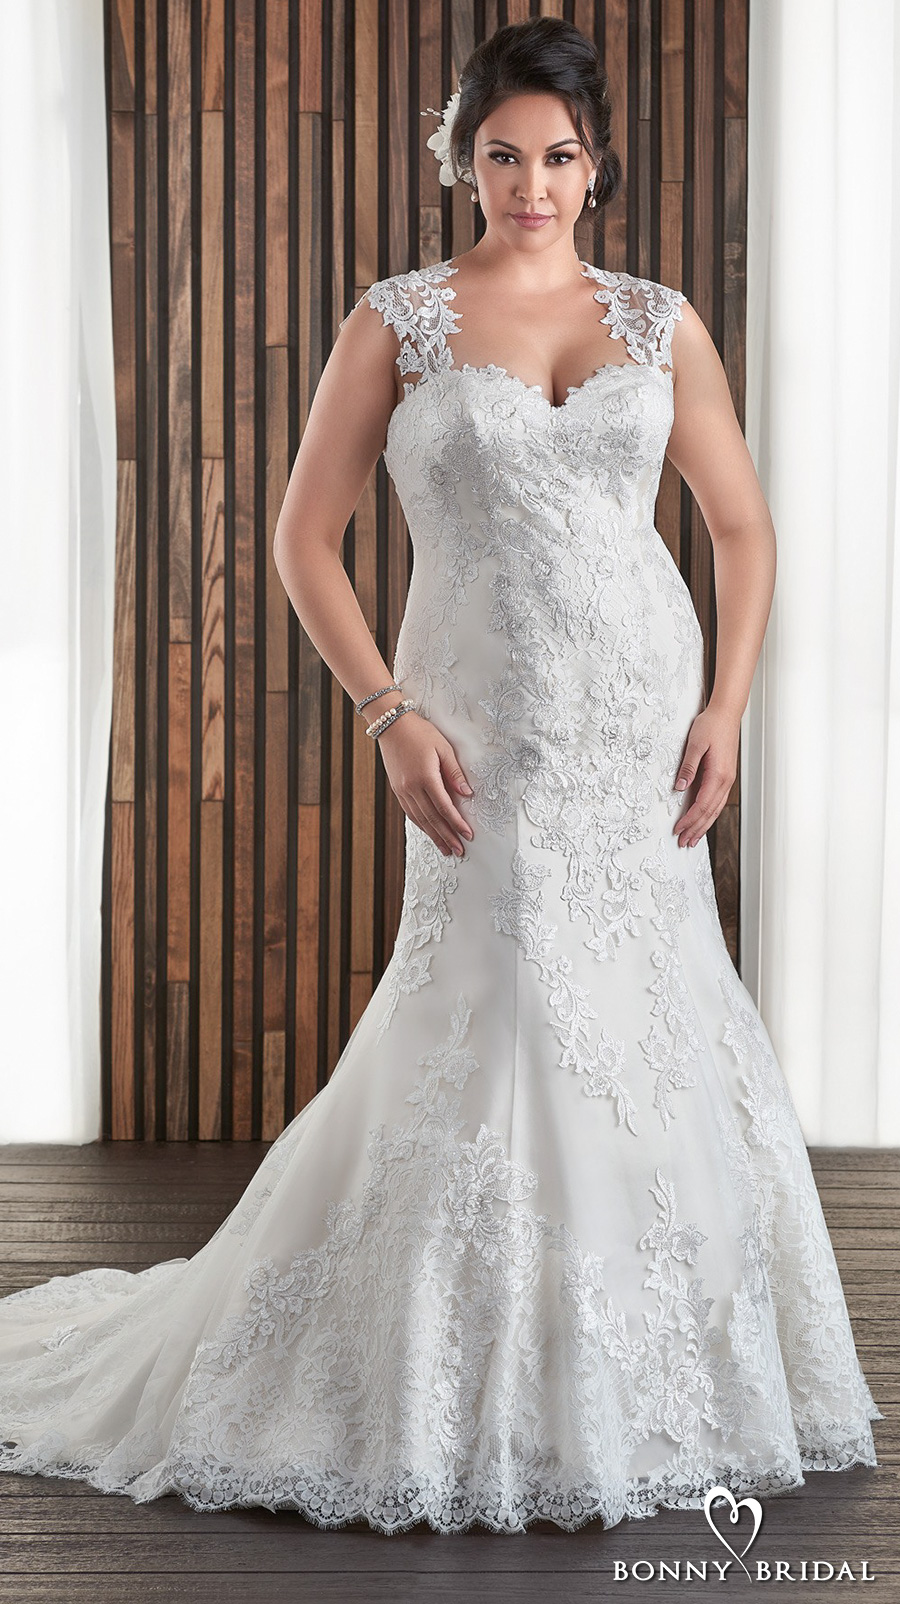 bonny bridal wedding dresses unforgettable styles for